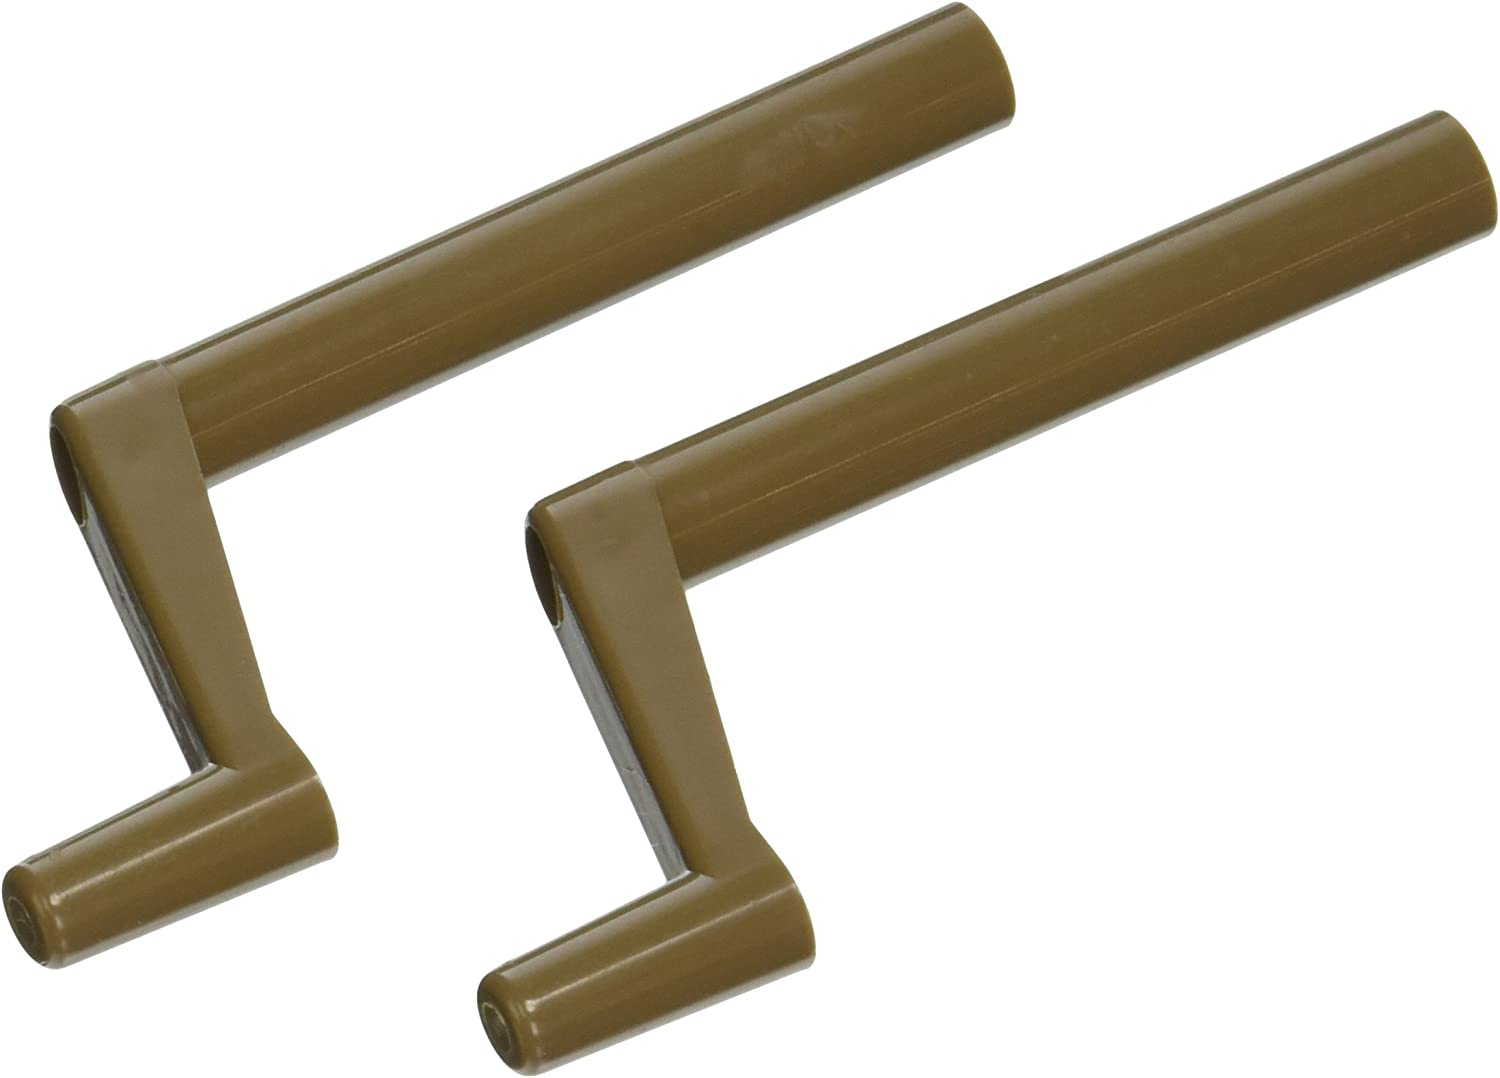 Window Handle 3-Inch Stem New mail order Brown 2 Pack Plastic of excellence